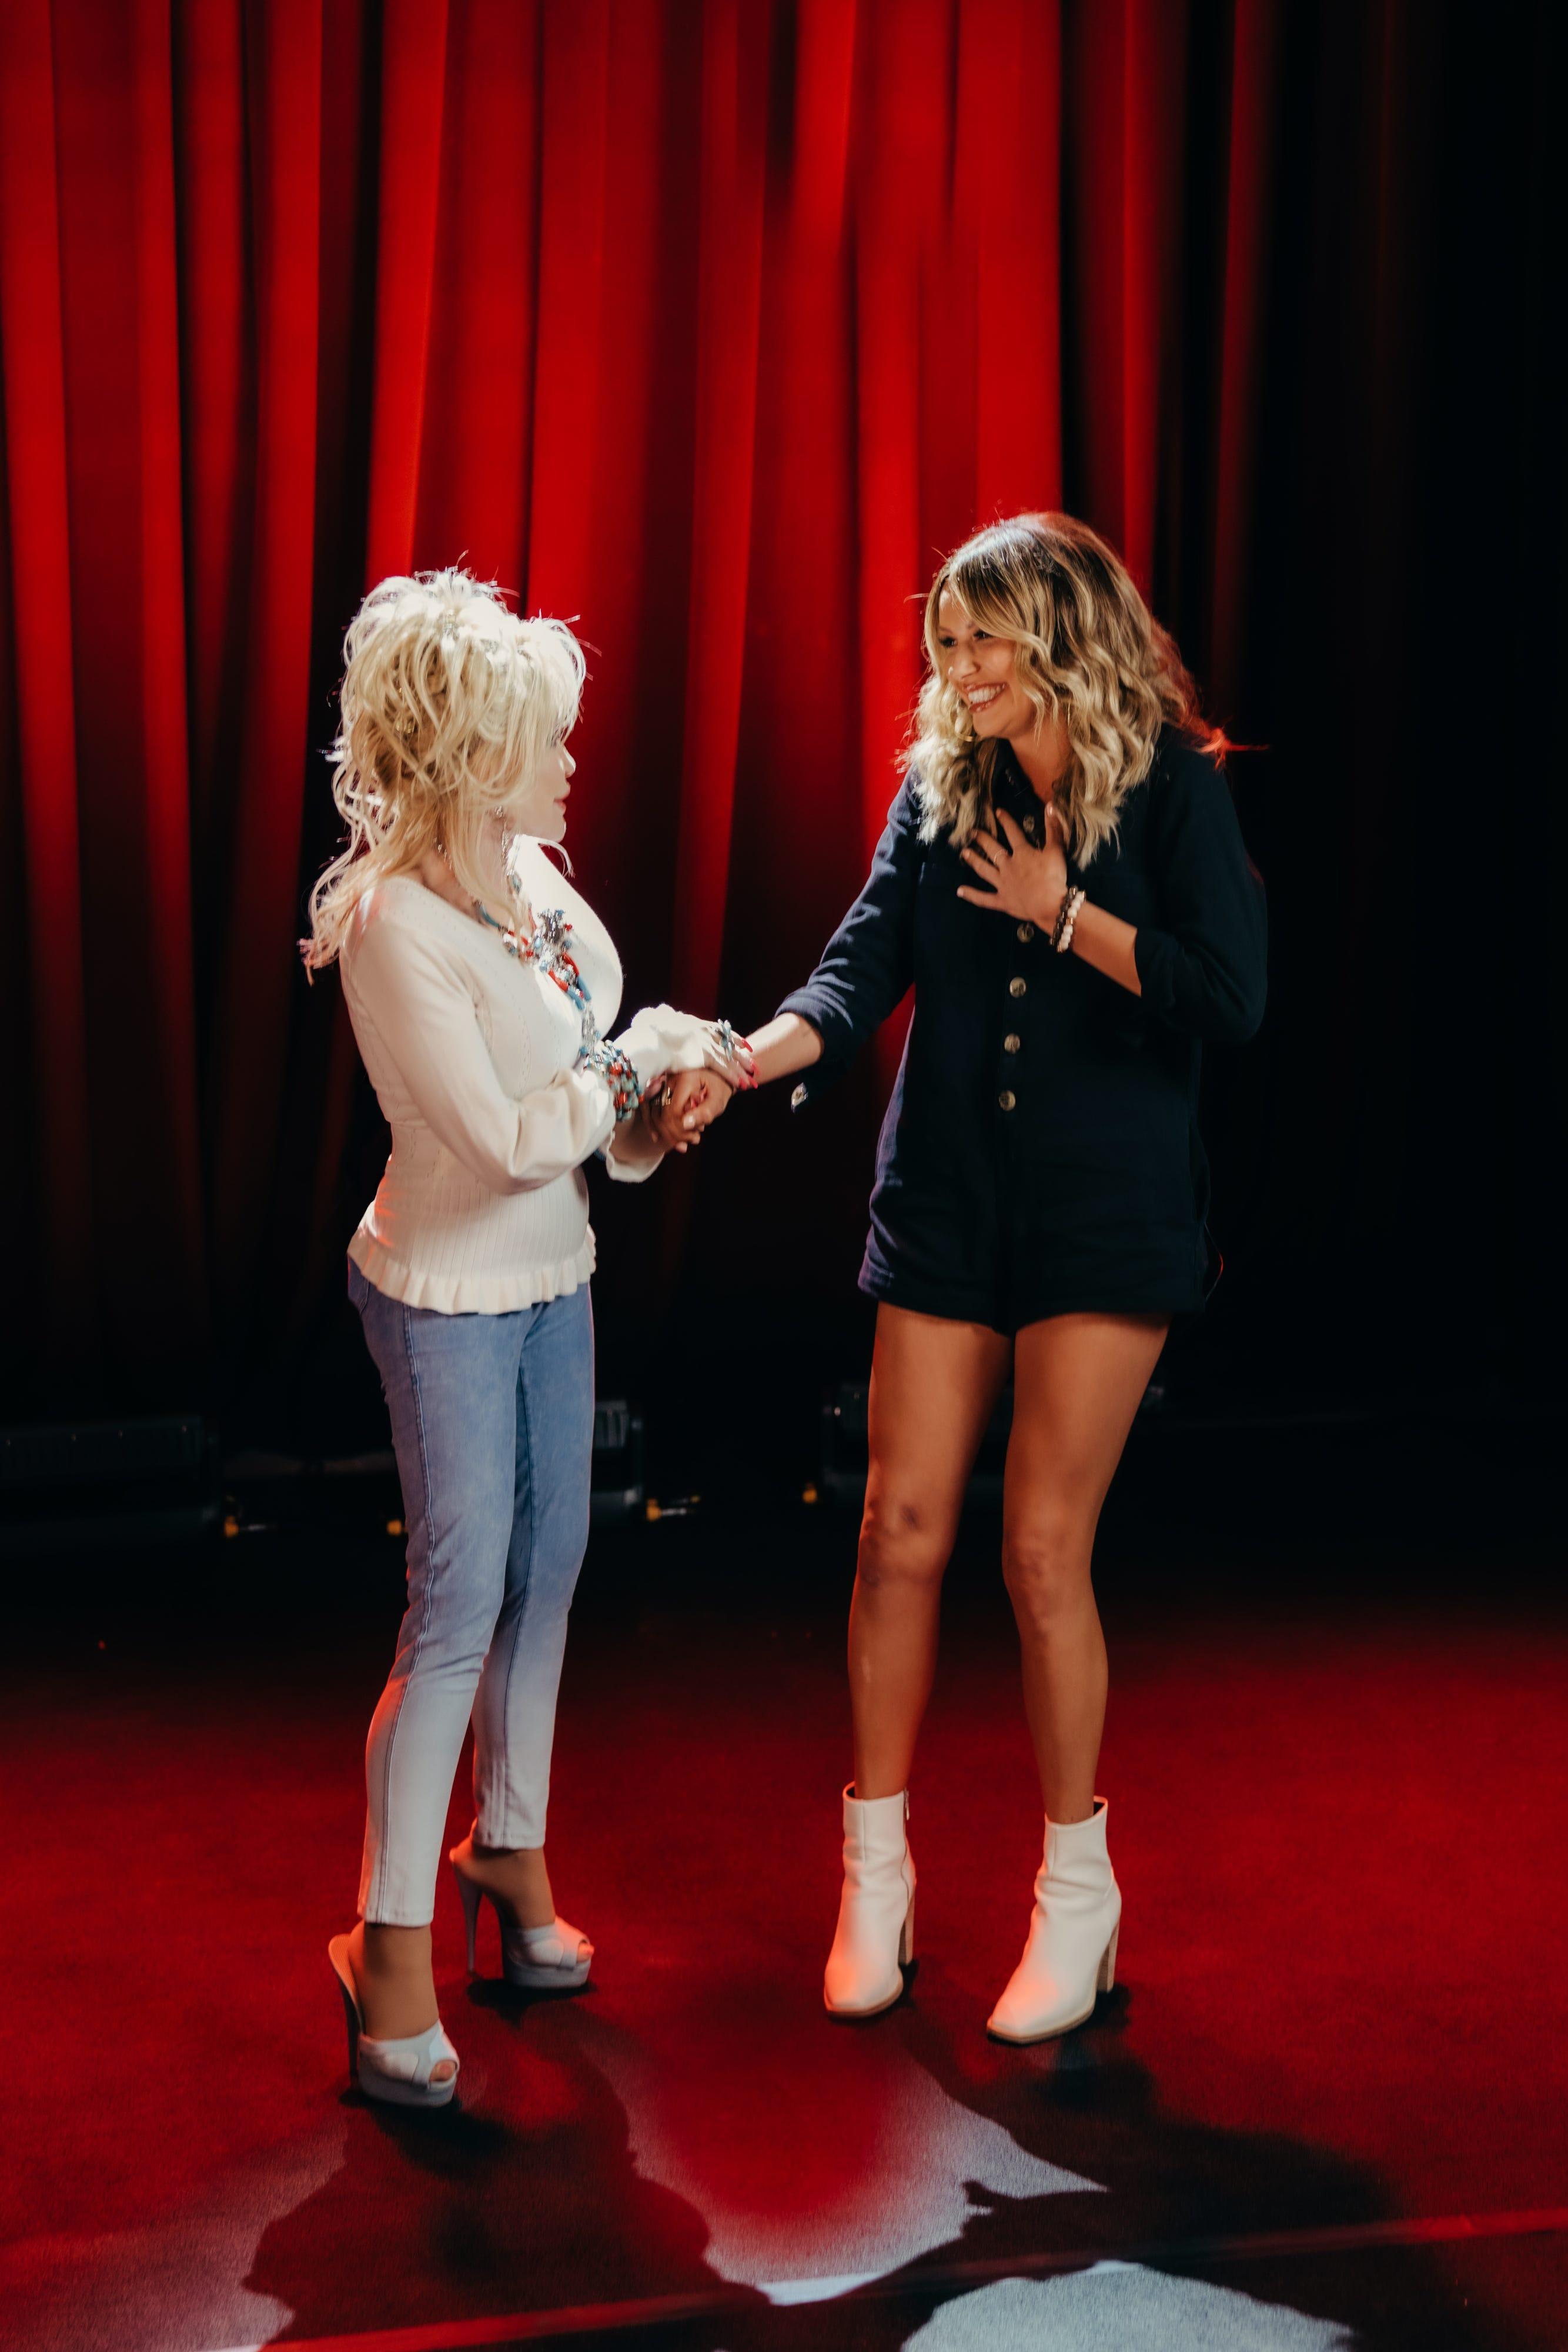 Dolly Parton surprises Carly Pearce with Grand Ole Opry invitiation